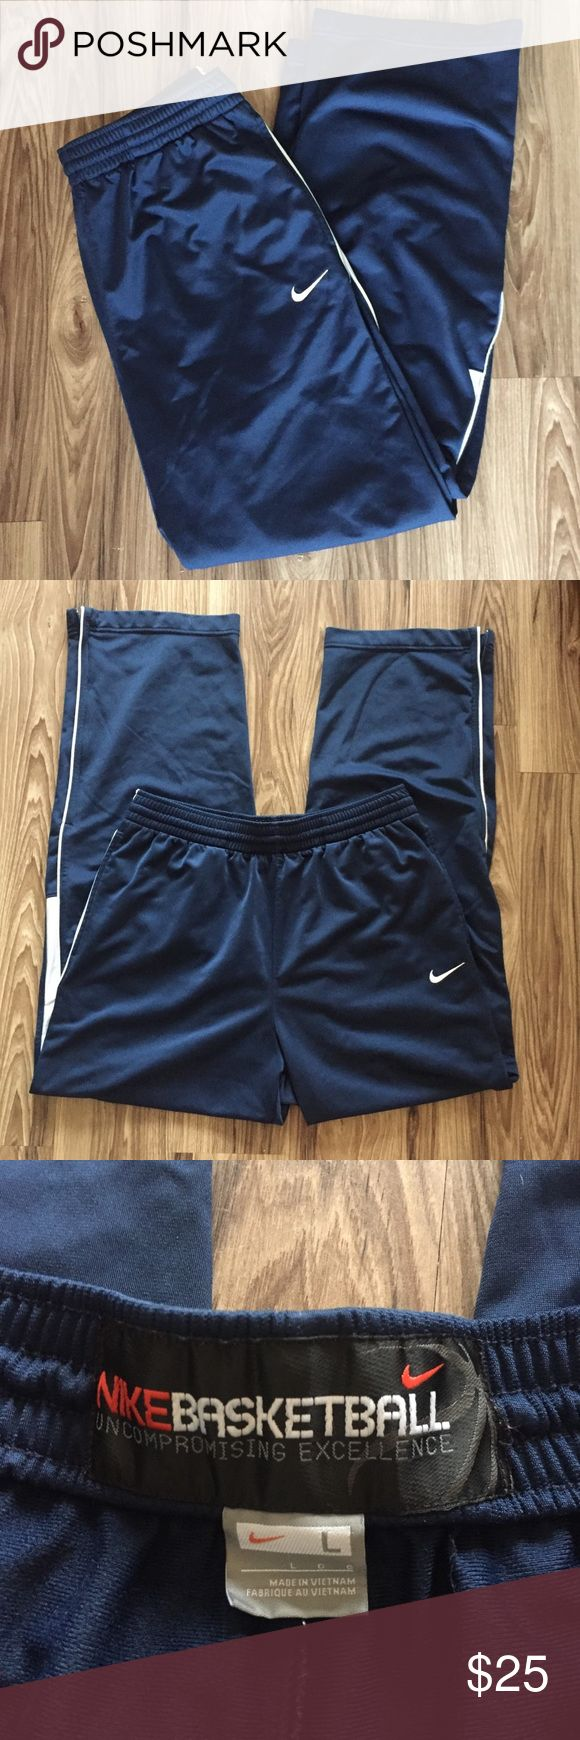 """Nike Navy and White Basketball Pants Size Large Nike Navy and White Basketball Pants Size Large. Pockets on sides. Elasticized waist and adjustable drawstring. Zipper on bottom leg openings. Small ink spots by pockets seen in pics. Approximate measurements: waist: 15.5"""" length: 42"""" Nike Pants Sweatpants & Joggers"""